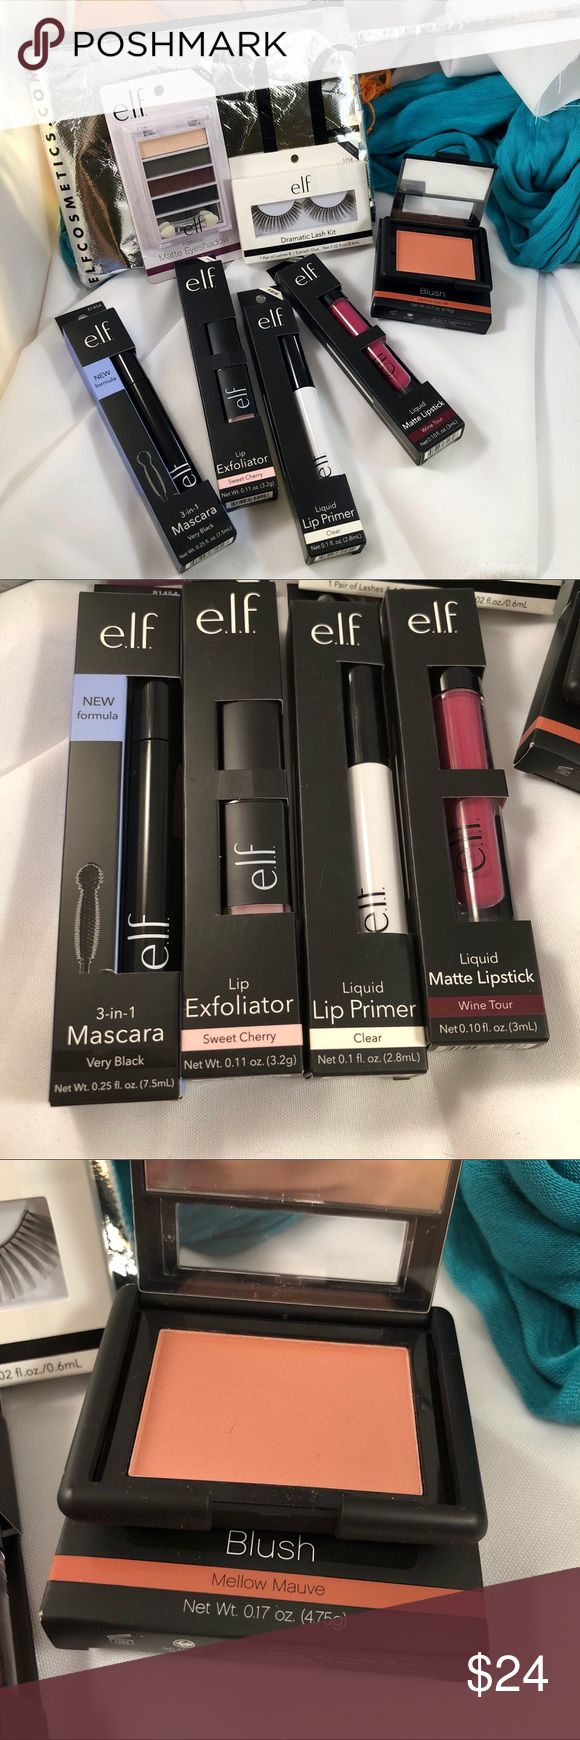 "ELF Cosmetics Custom ""BEST OF"" Bundle #2 All full sized brand new products for a full face of WOW! Famous Lip Exfoliator in Sweet Cherry. liquid Lip Primer. 3-in-1 Mascara. Liquid Matte Lipstick in Wine Tour. Matte Blush in Mellow Mauve. Matte Eyeshadow Quad in Matte Plum. Dramatic Eyelash Kit. All in a foiled elf bag💕 e.l.f. Makeup"